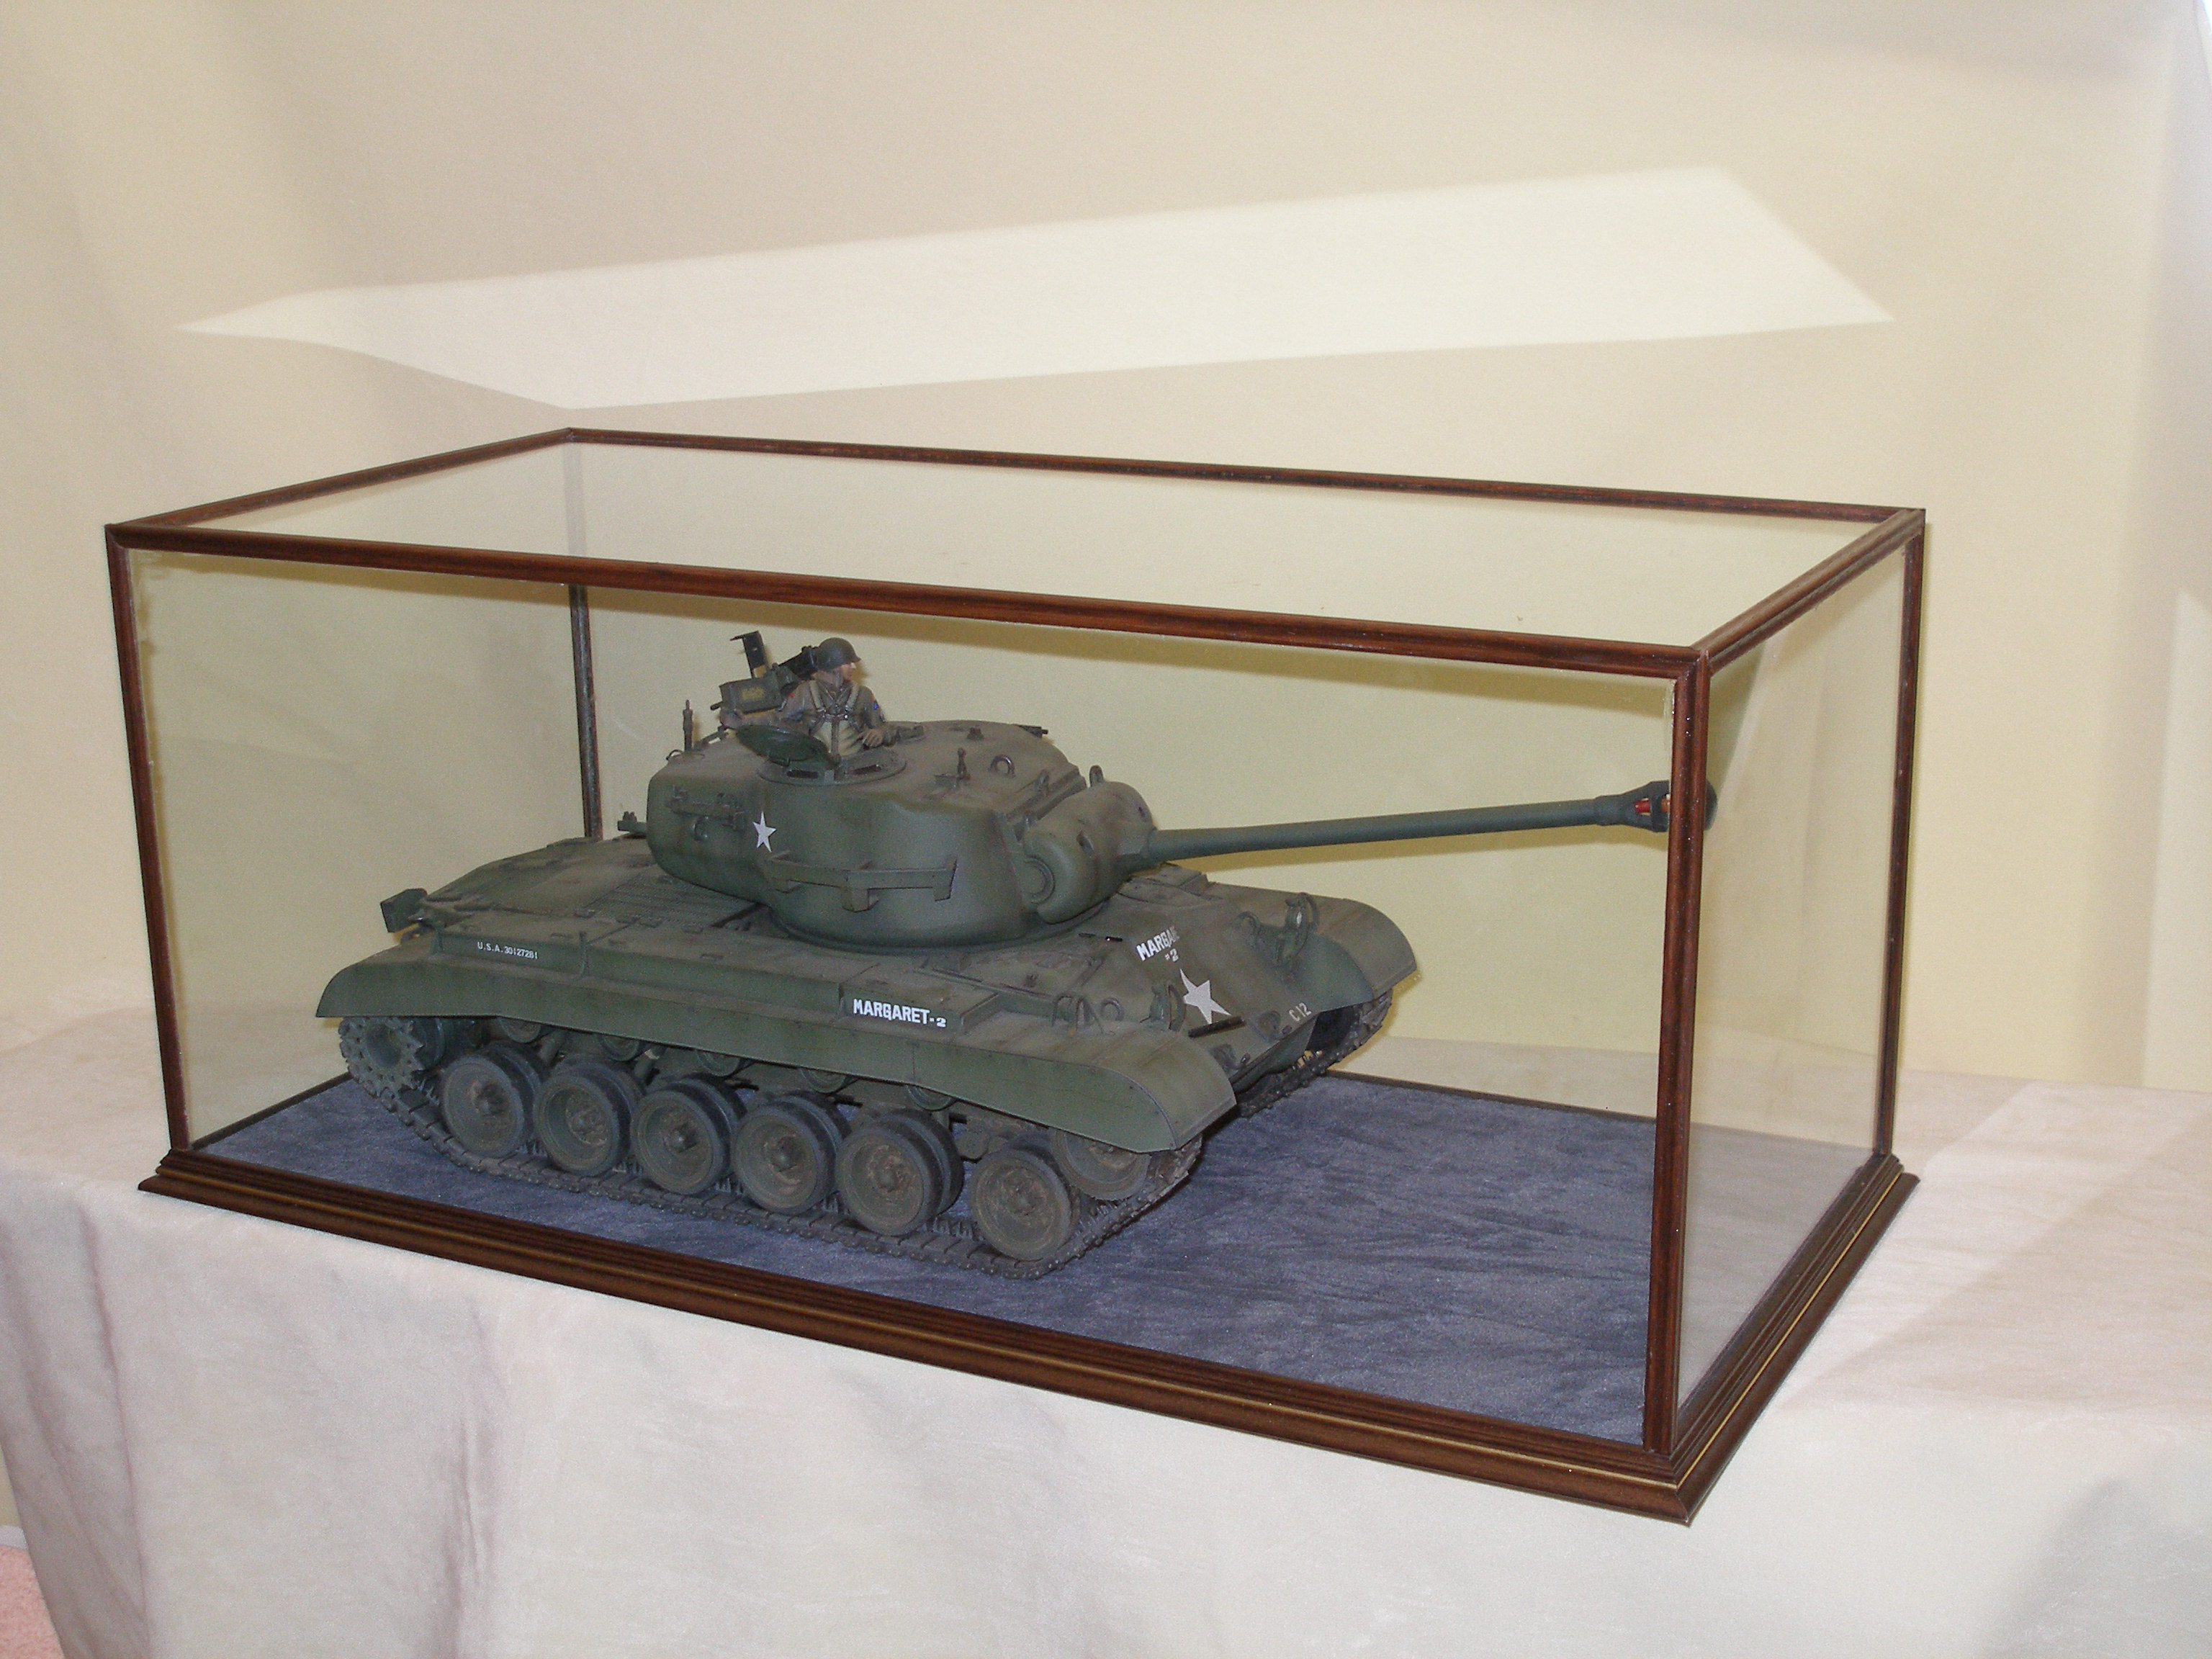 Model Tank in Raclifffe Case